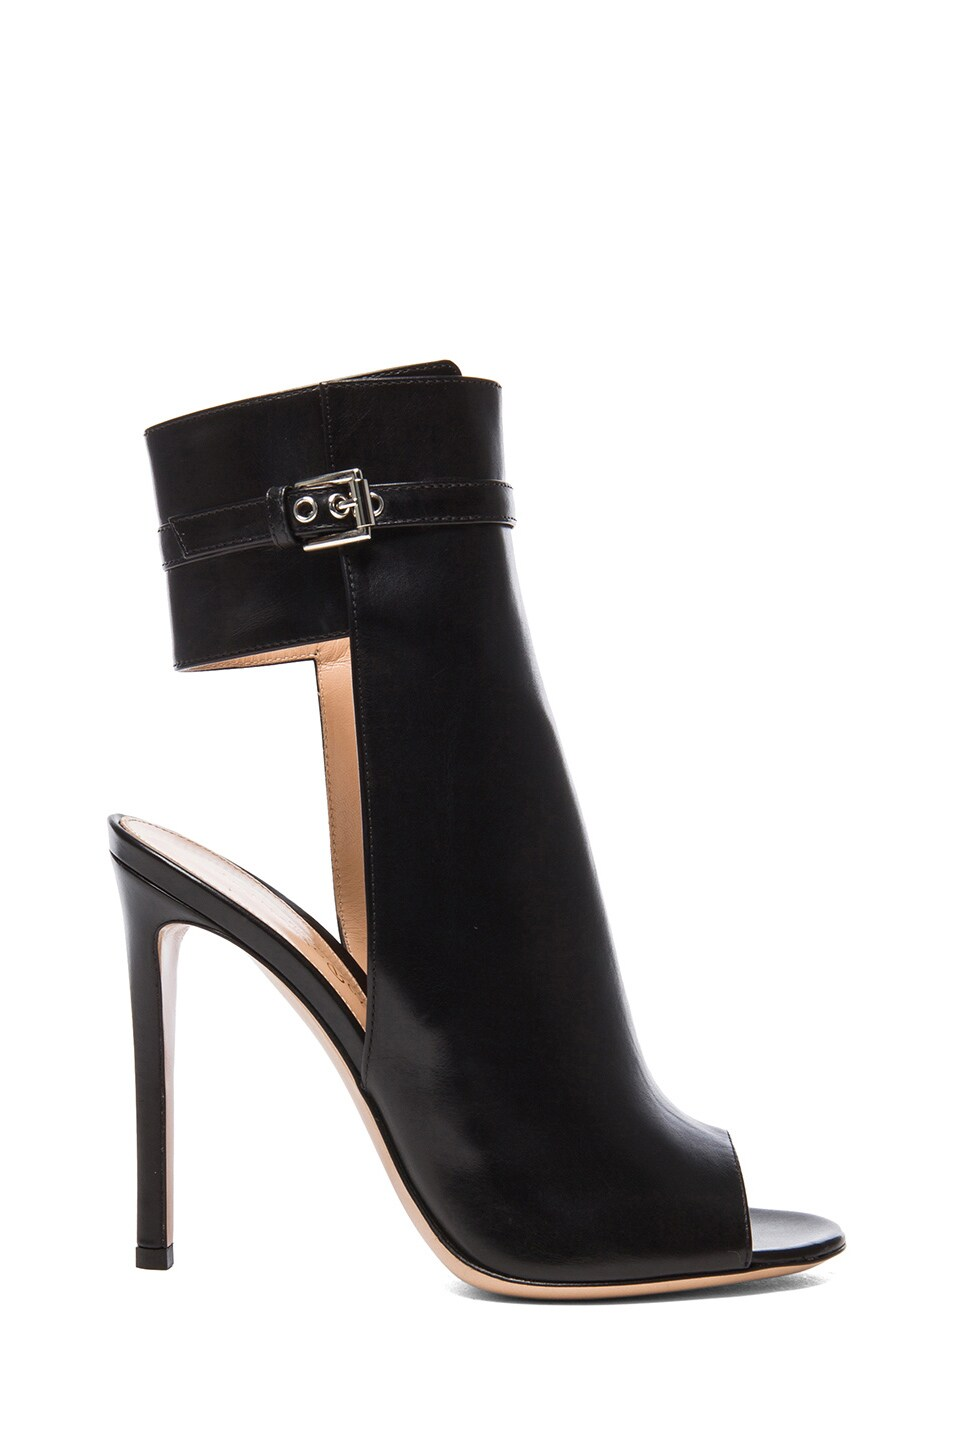 Image 1 of Gianvito Rossi Ankle Strap Leather Booties in Black